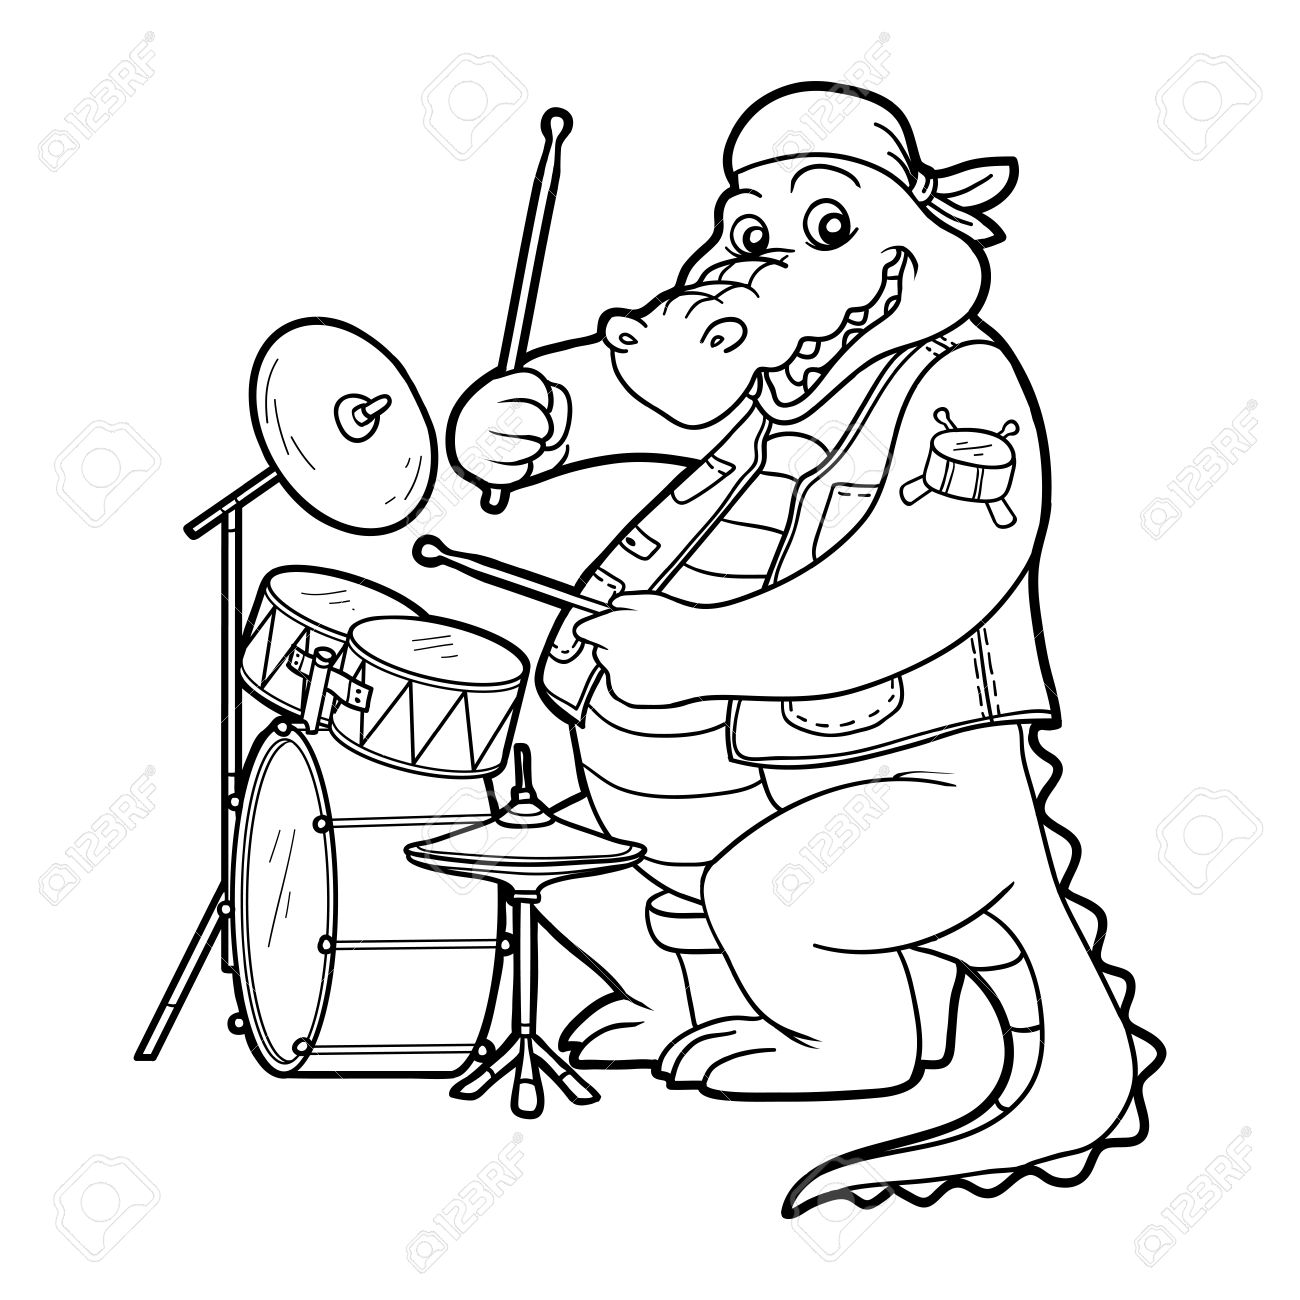 Coloring Book For Children: Music Band (crocodile And Drum.